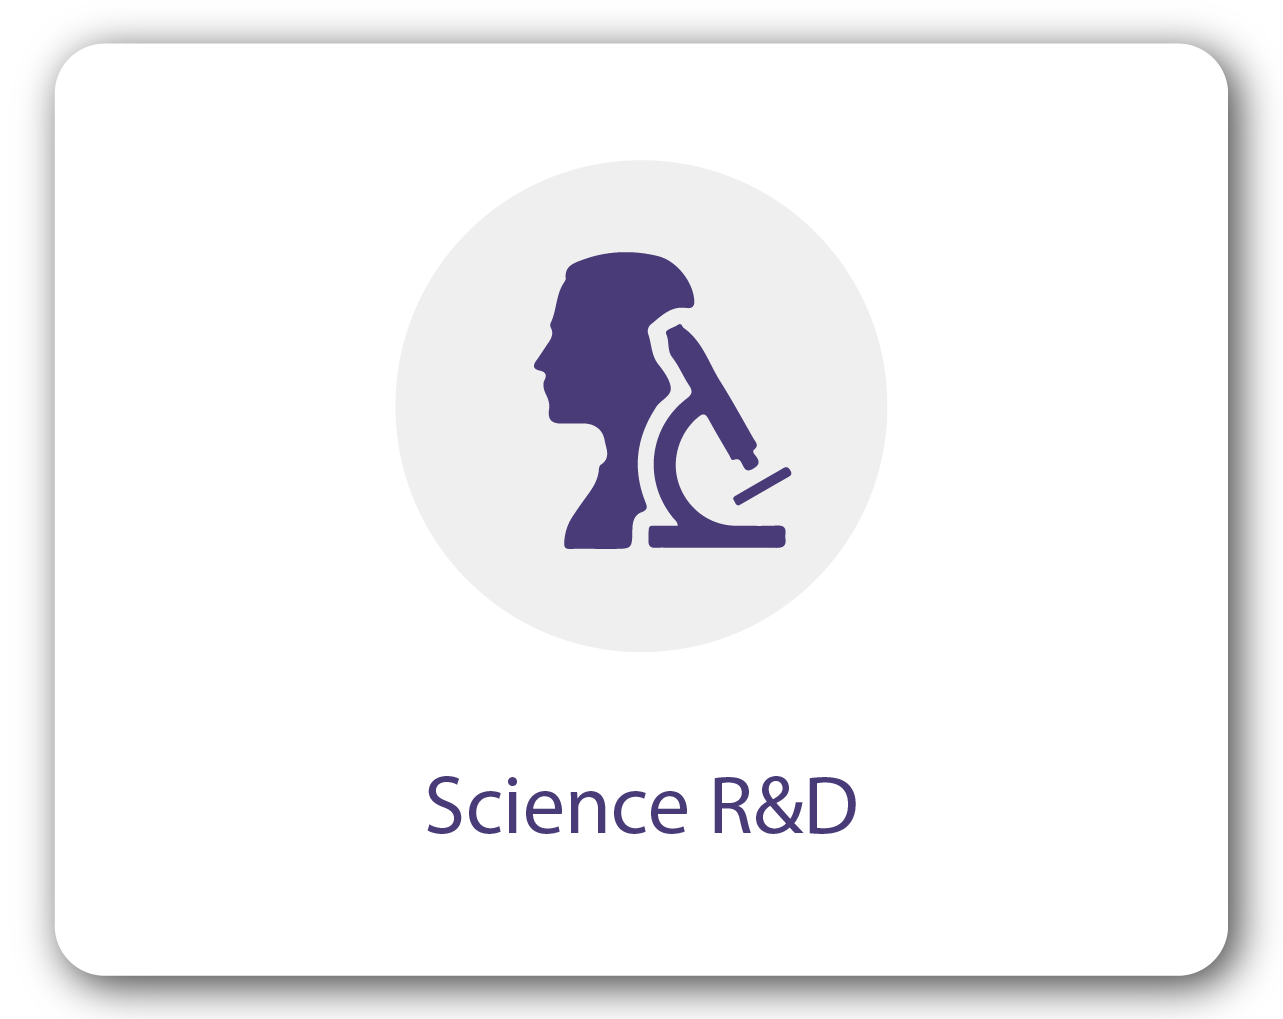 Science R&D